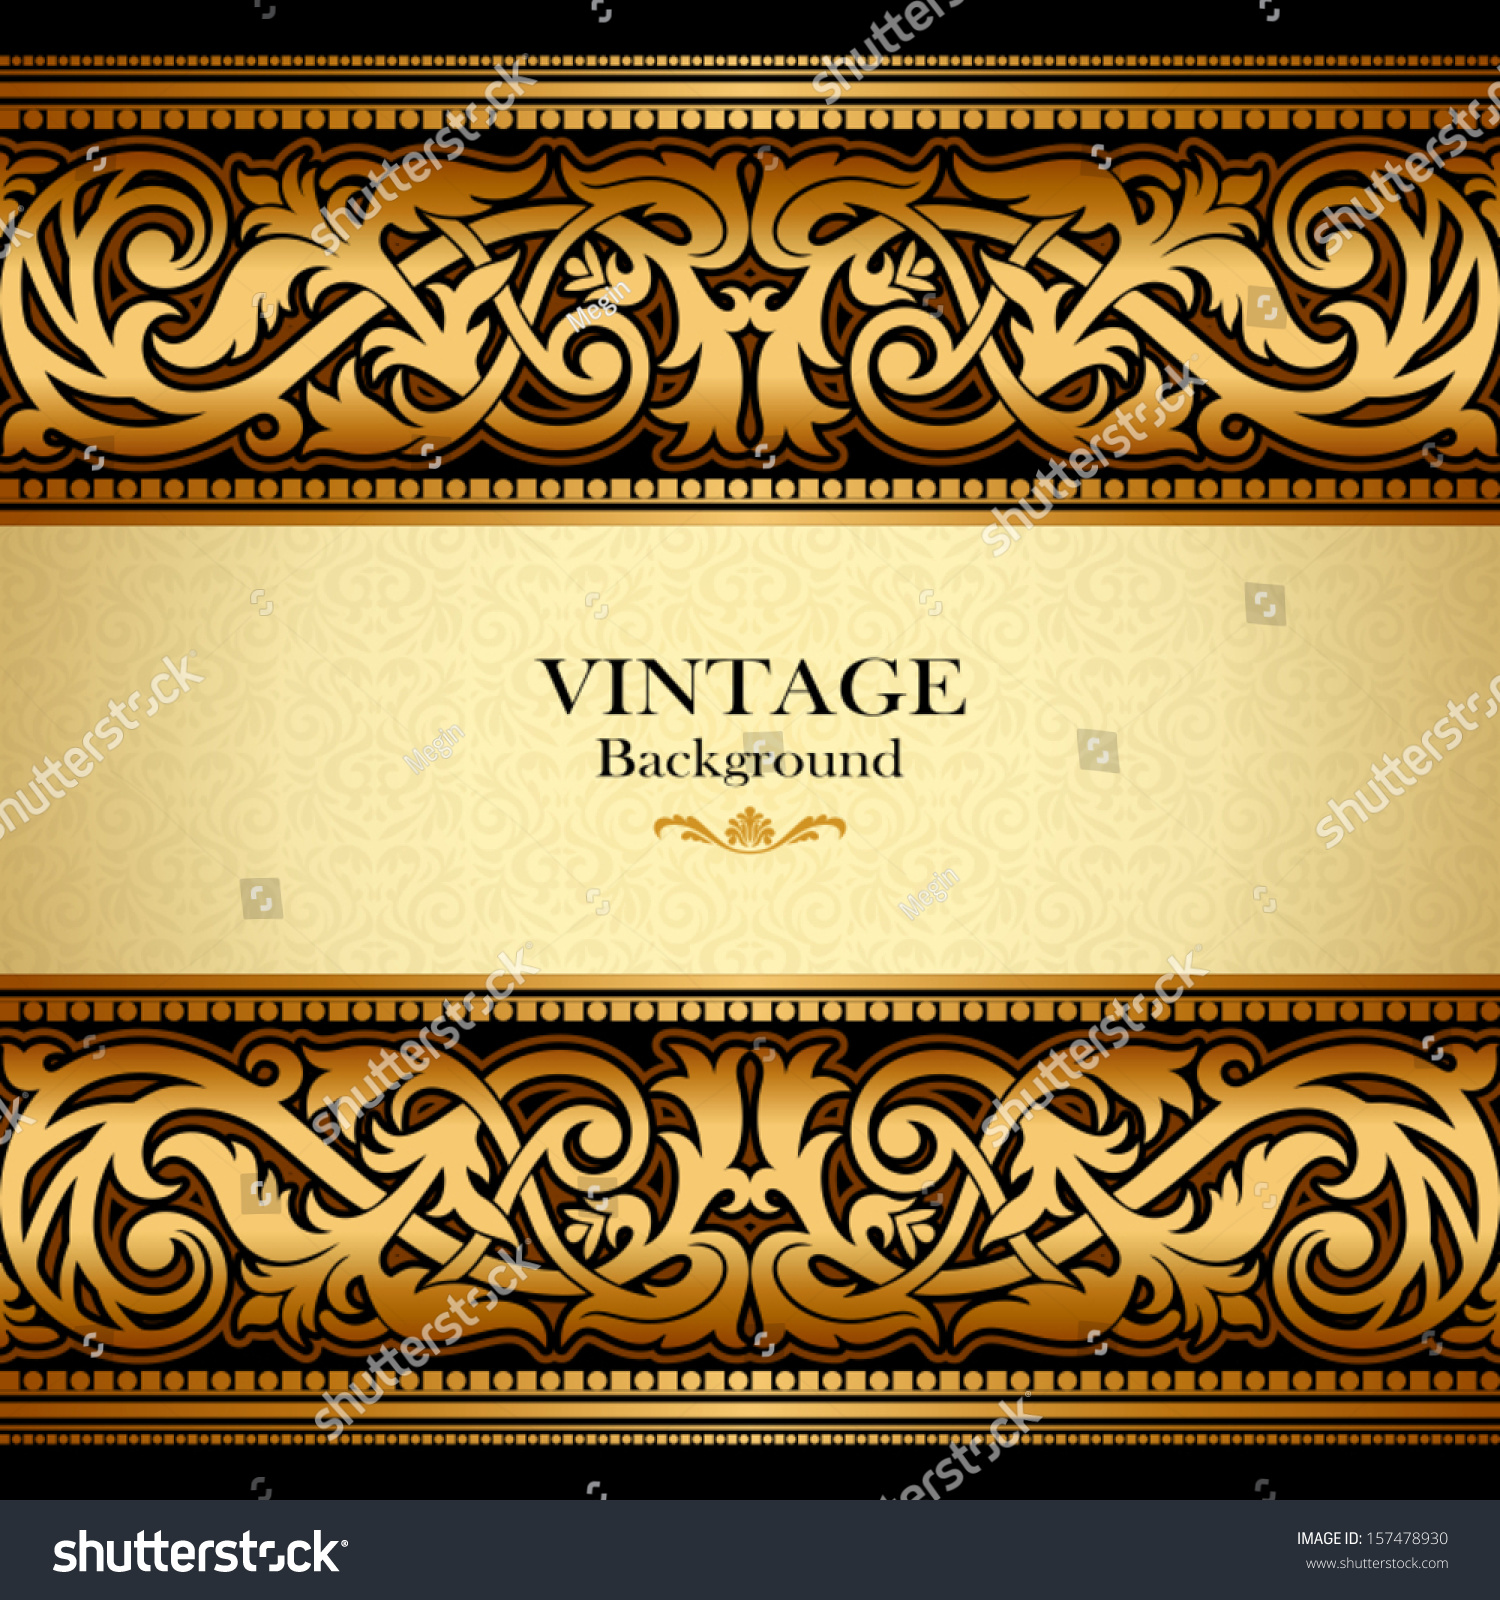 Vintage background ornate baroque pattern vector illustration stock -  Vectors Illustrations Footage Music Vintage Gold Background Antique Victorian Ornament Baroque Frame Beautiful Old Paper